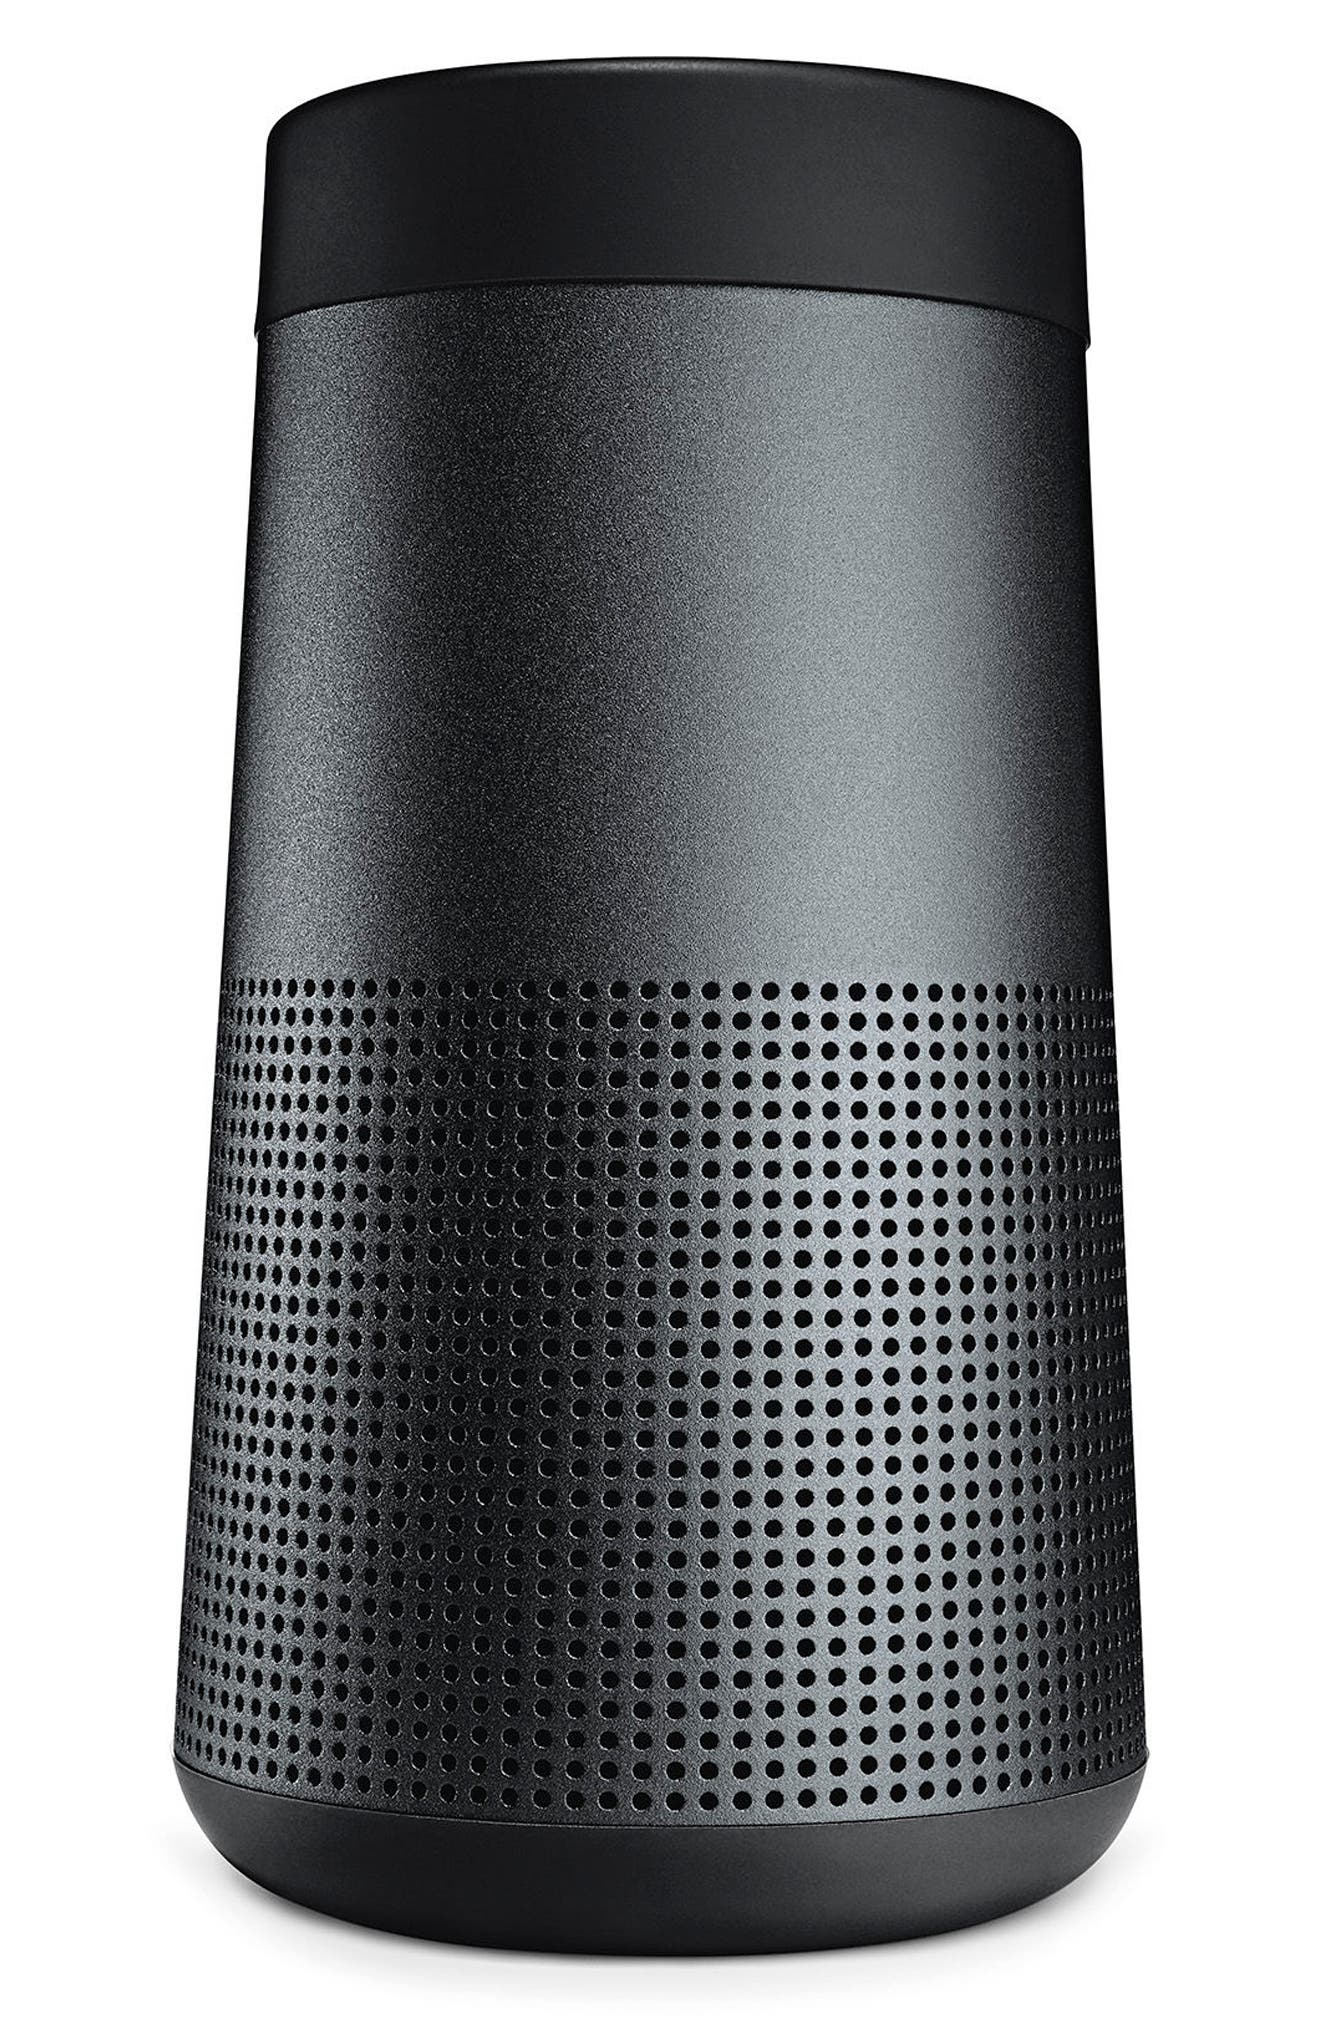 SoundLink<sup>®</sup> Revolve Bluetooth<sup>®</sup> Speaker,                             Alternate thumbnail 6, color,                             Black